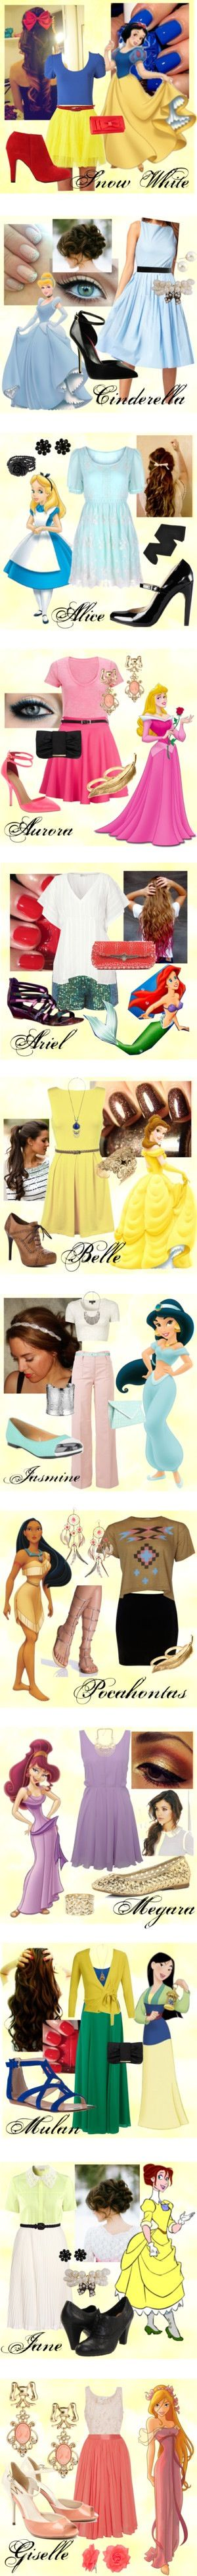 Next semester can I just dress like a disney character?                                                                                                                                                                                 More